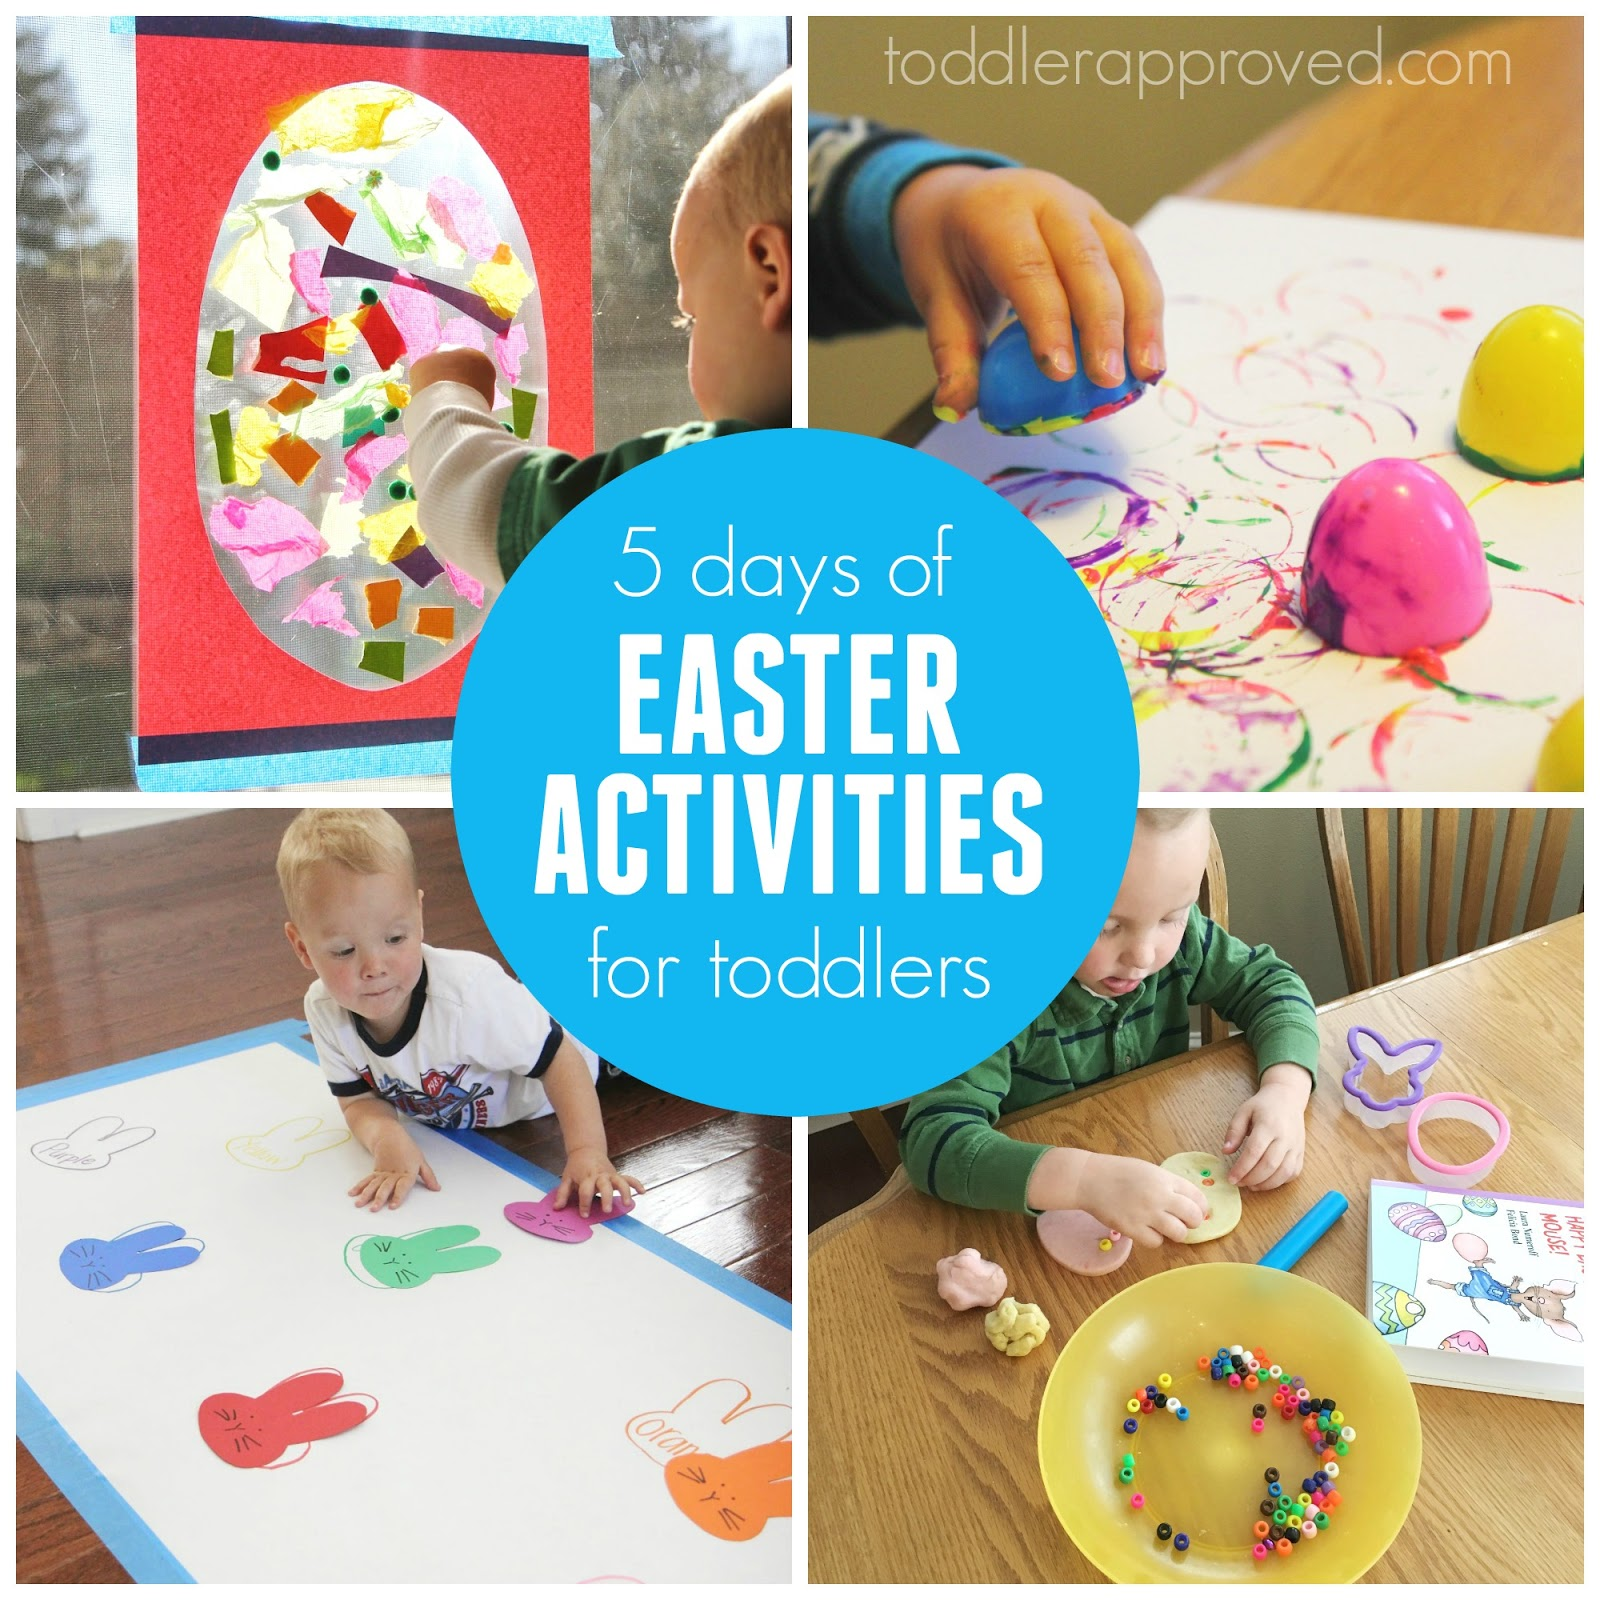 Toddler Approved!: 5 Days Of Toddler Easter Activities